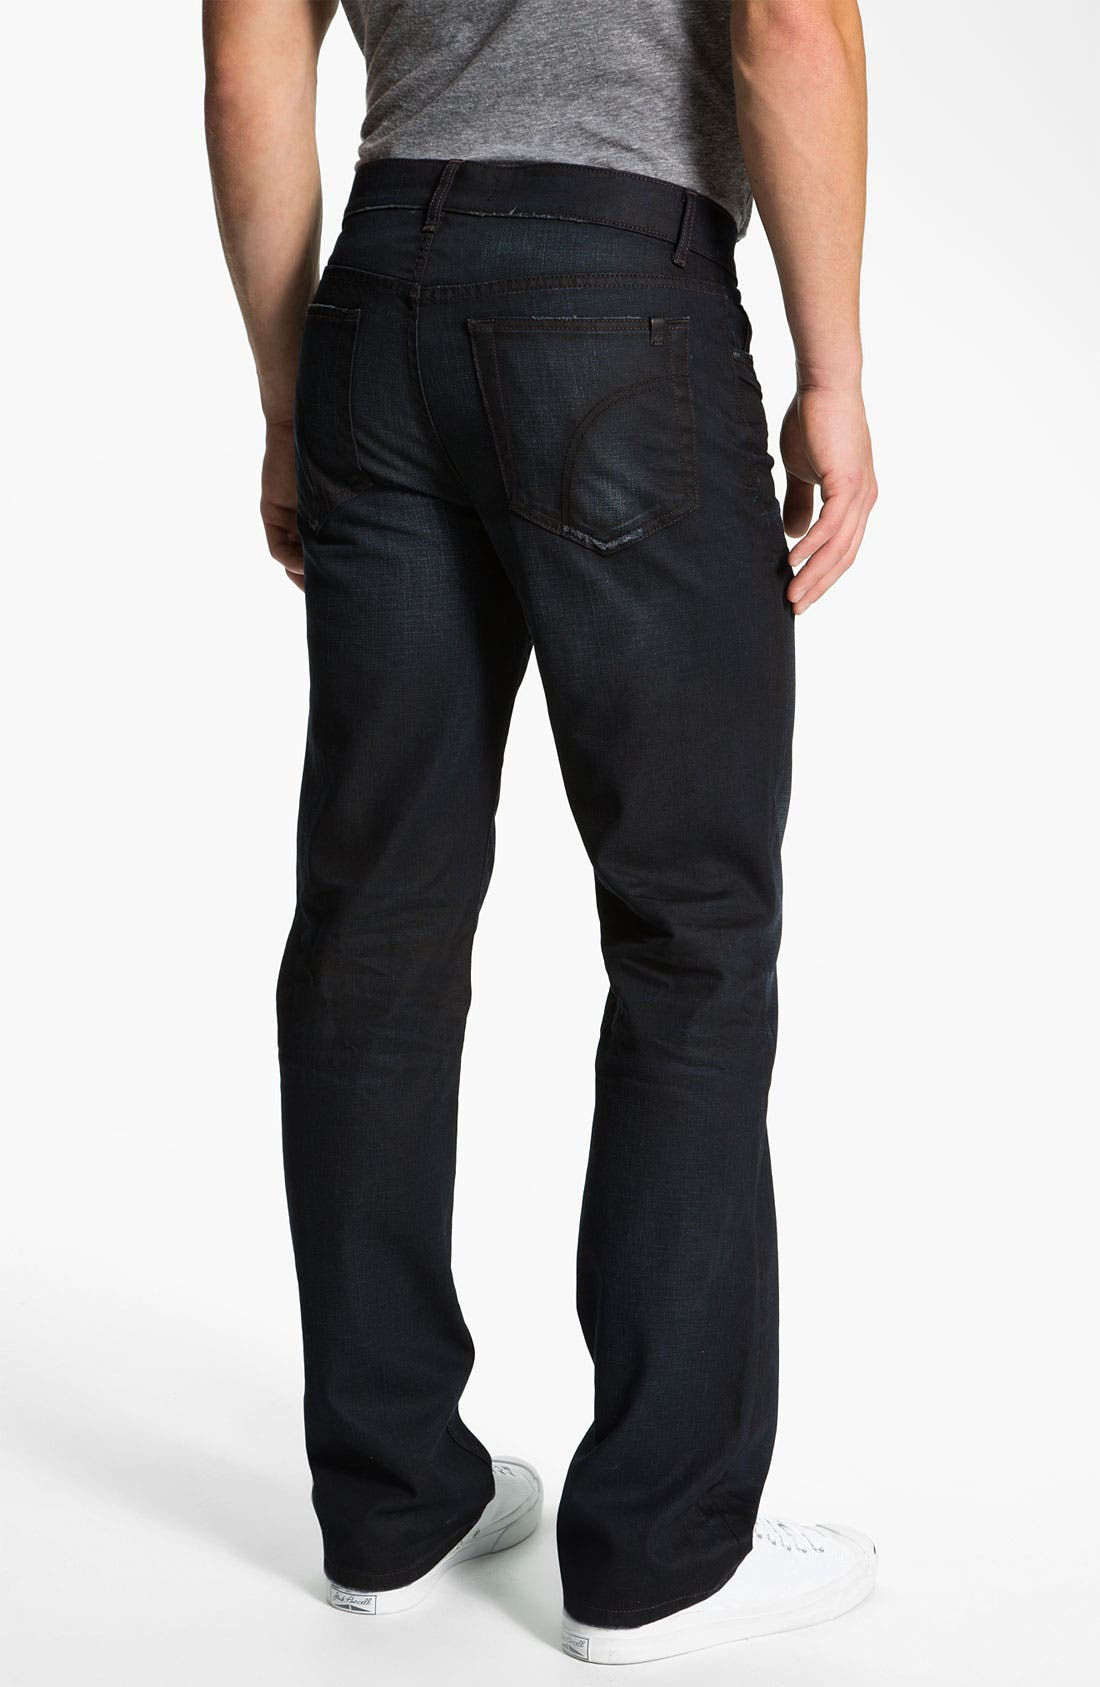 Alternate Image 1 Selected - Joe's 'Rebel' Relaxed Fit Jeans (Fredrick)